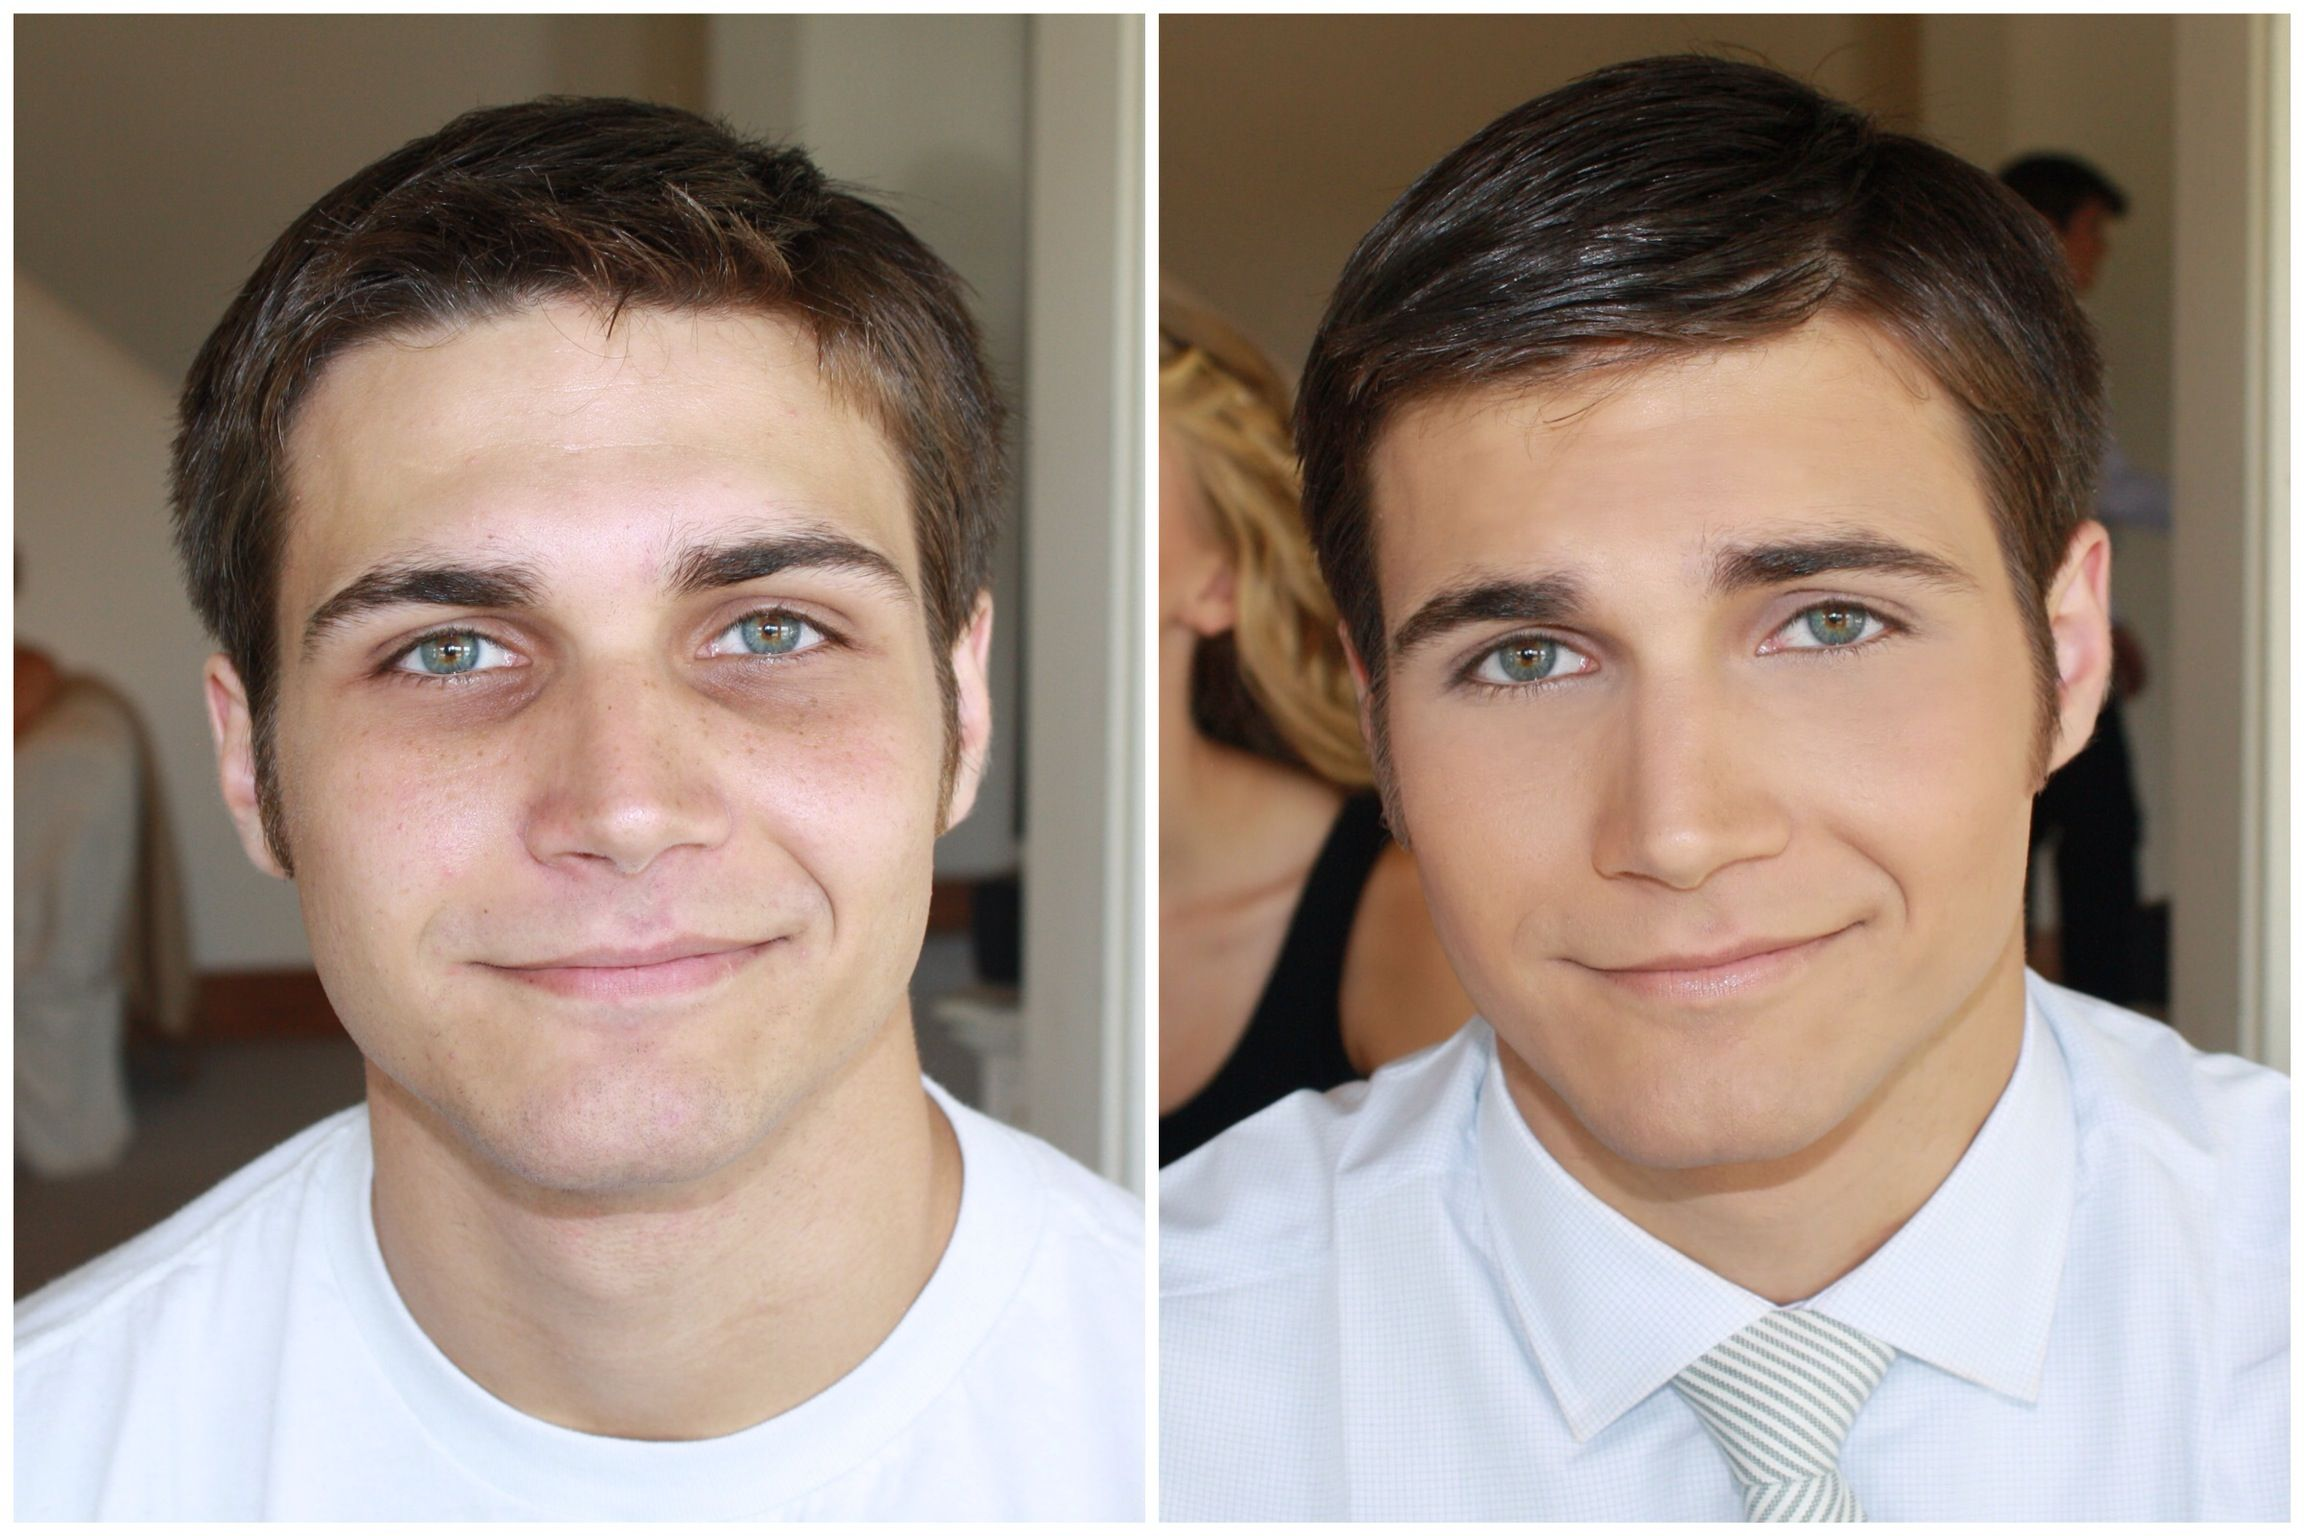 What a difference! Do you think makeup for men is